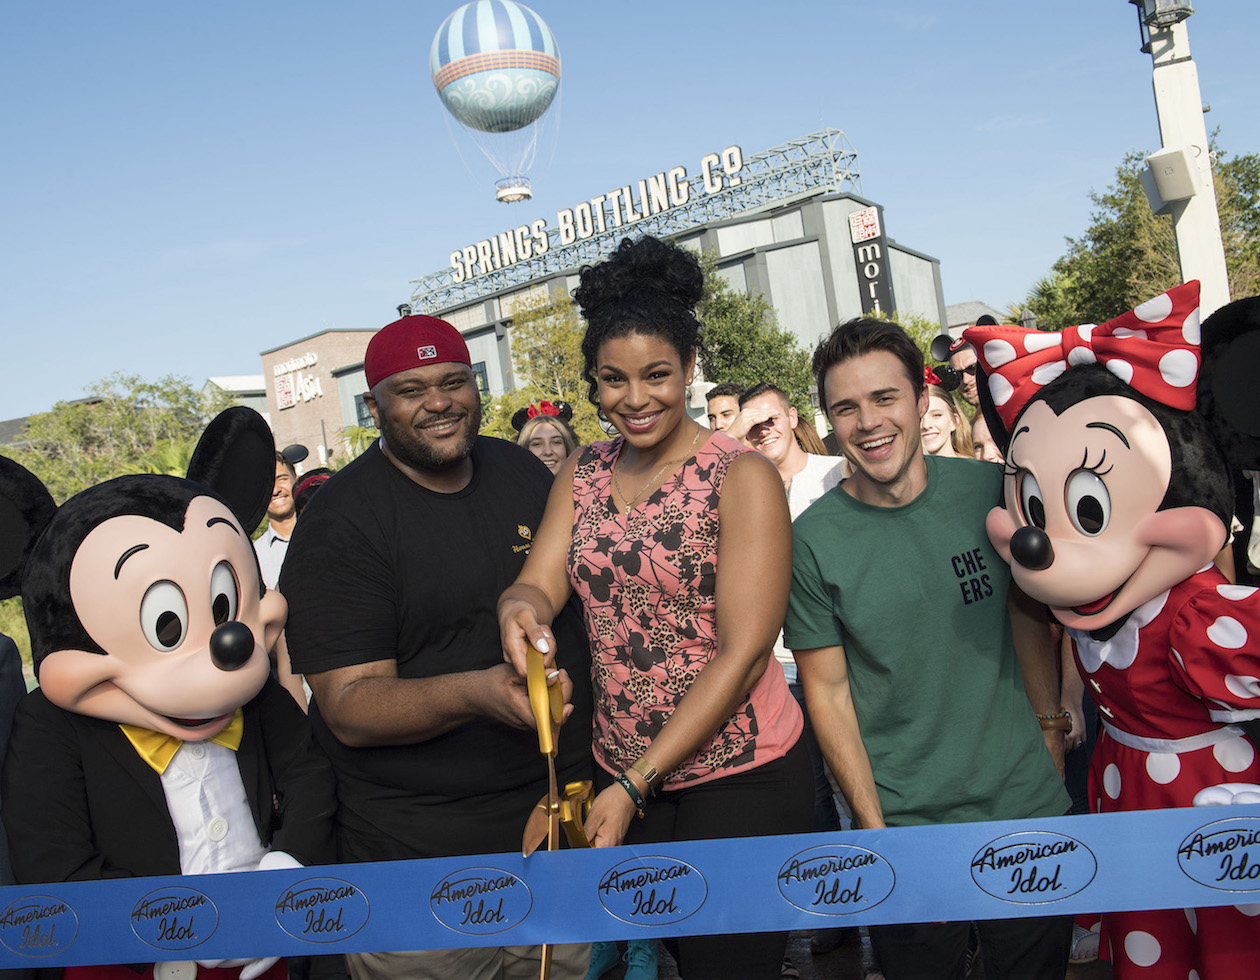 Pictured, from left, are Mickey Mouse, Ruben Studdard, Jordin Sparks, Kris Allen and Minnie Mouse. (ABC photo courtesy Walt Disney World/David Roark)